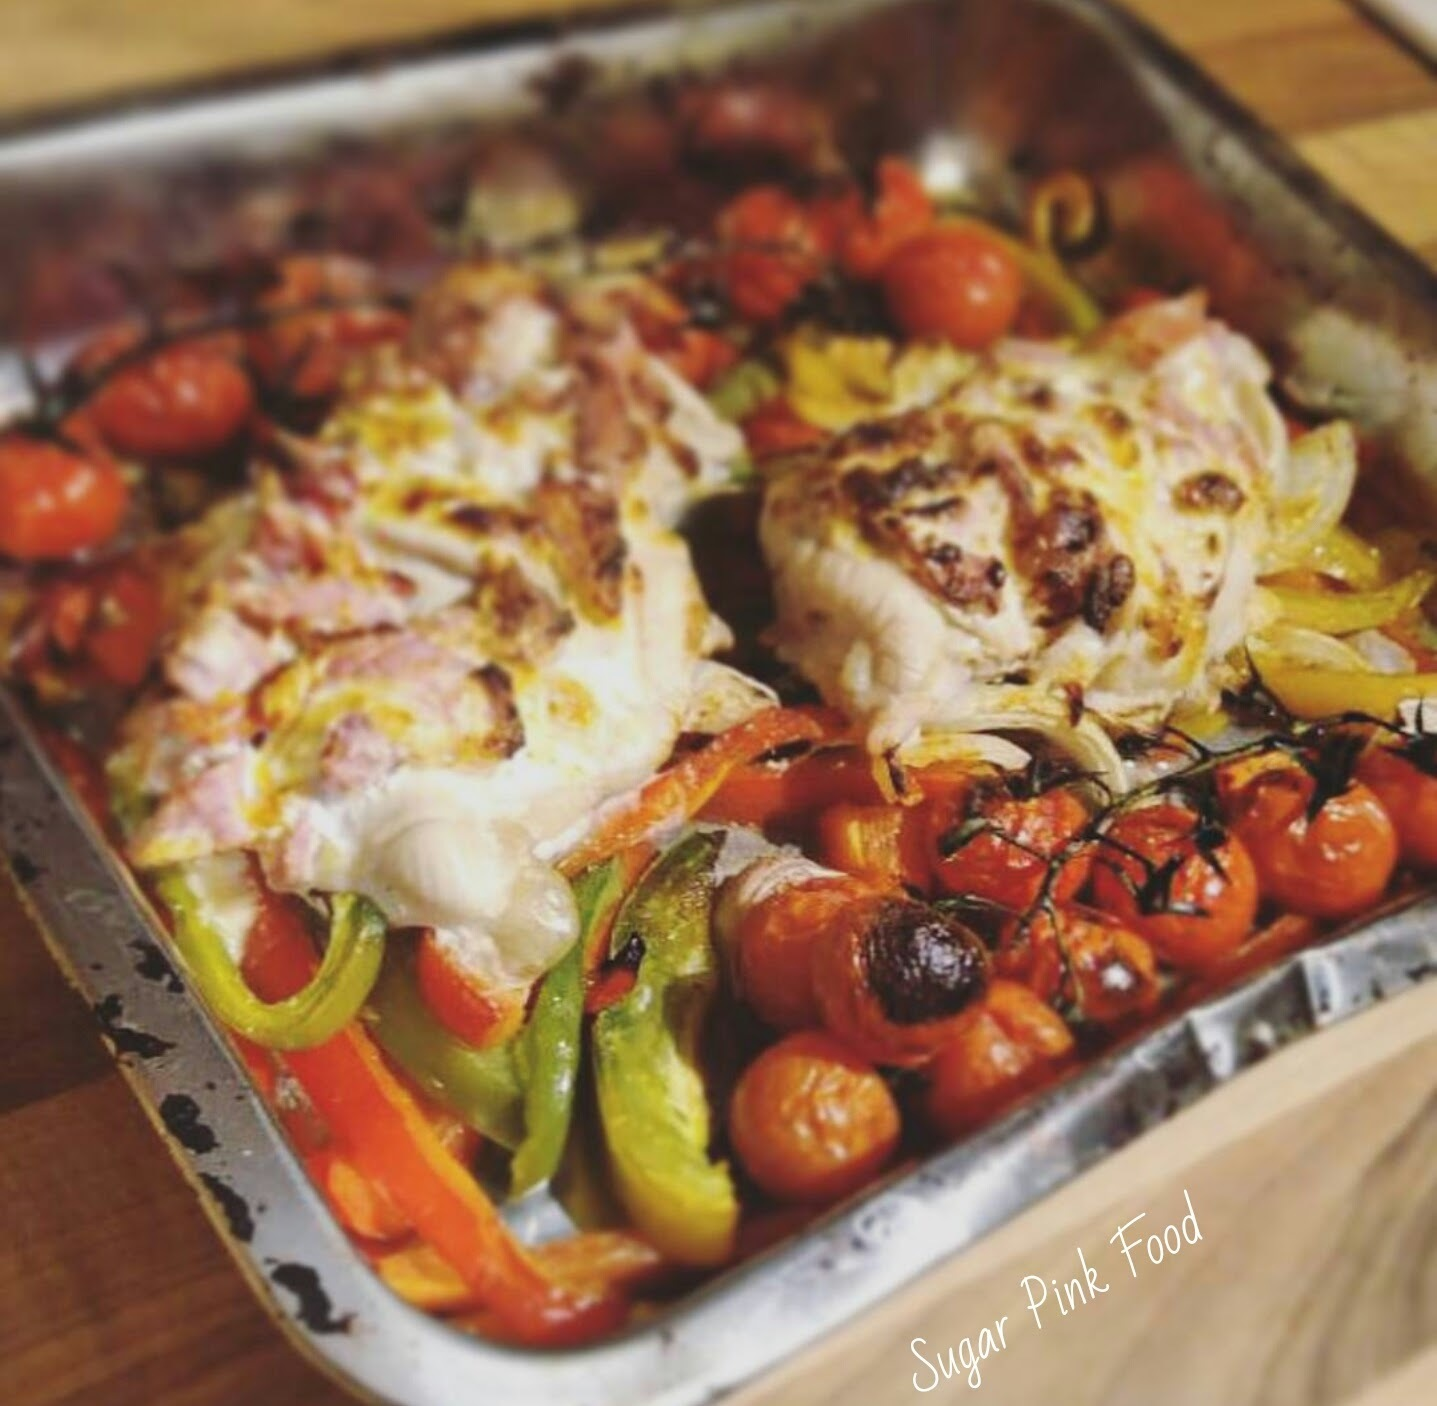 Slimming World Friendly Recipe:- Creamy Hassleback Chicken & Vegetable Bake